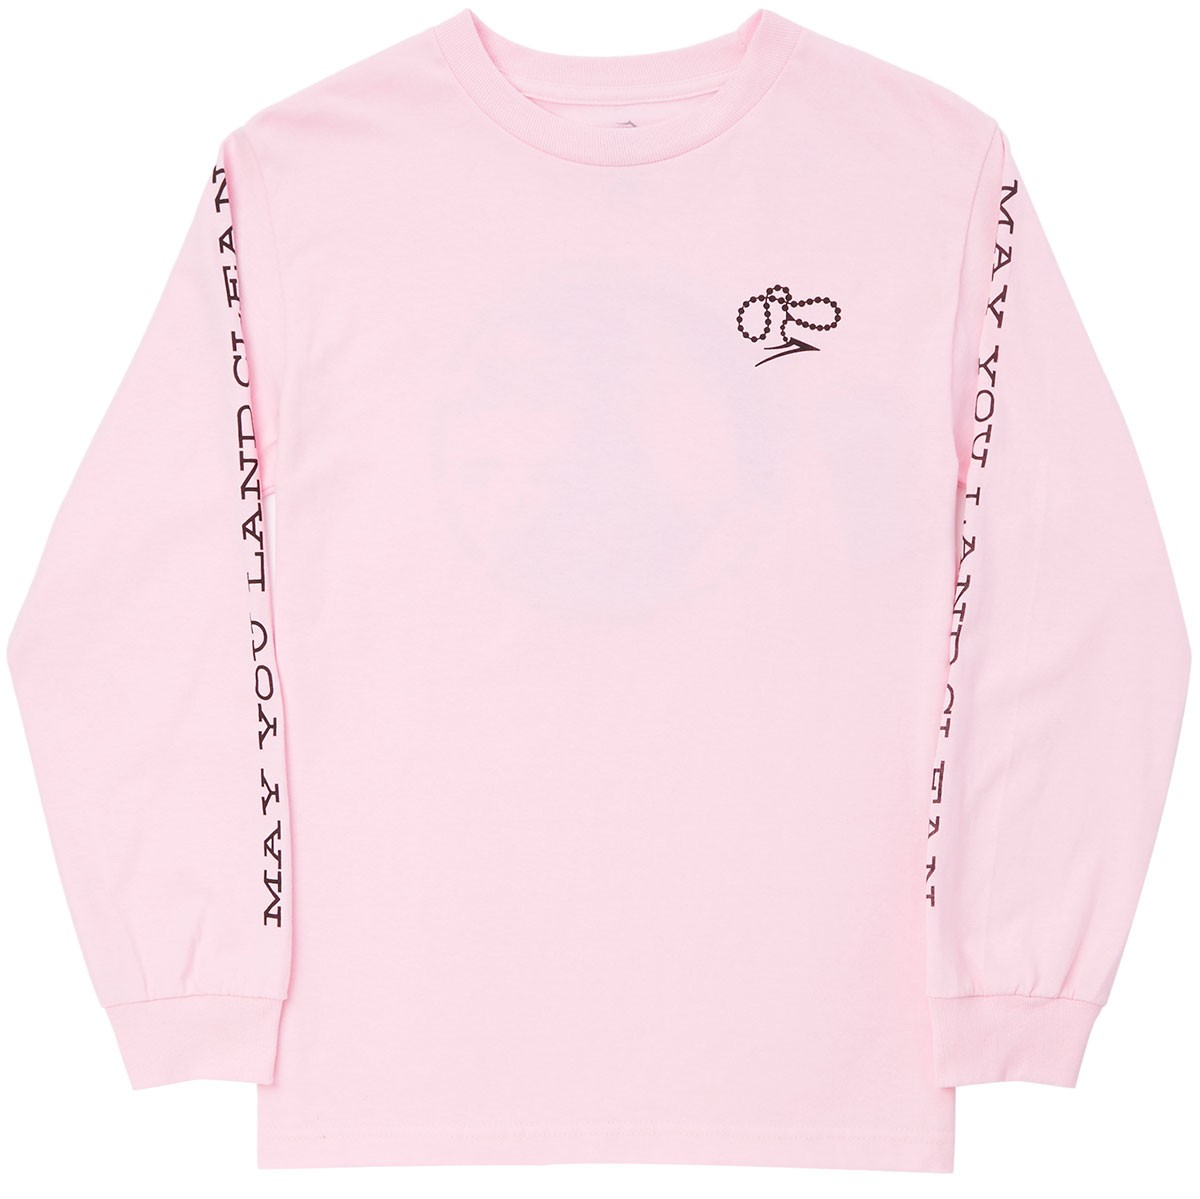 Blessing Long Sleeve T-Shirt - Pink